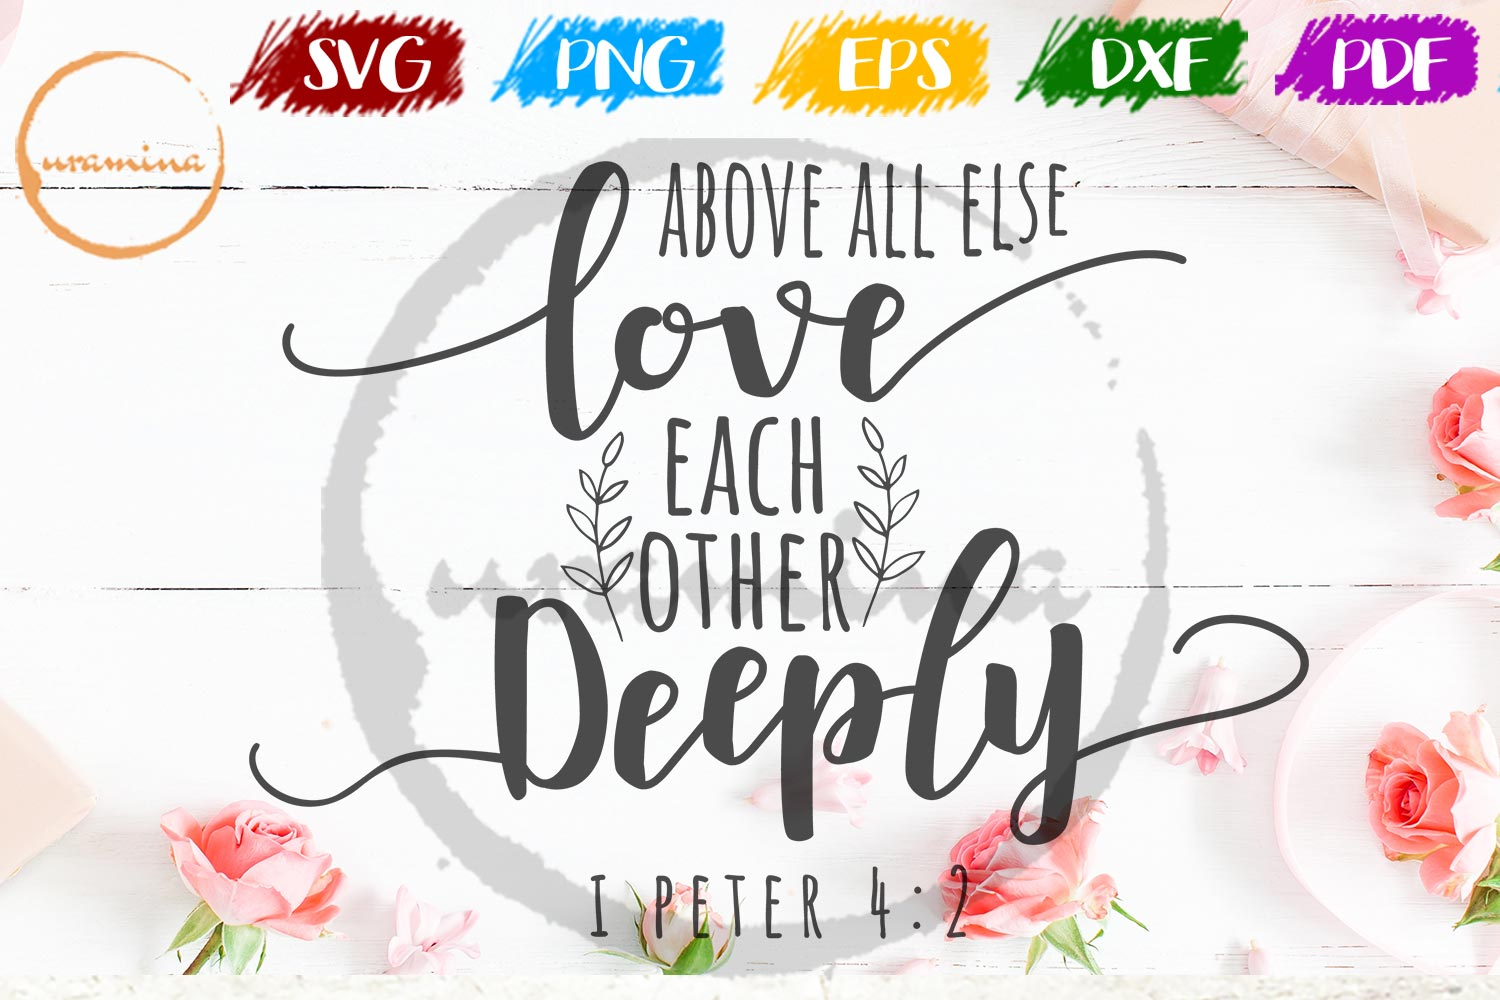 Above All Else Love Each Other Deeply Valentine SVG PDF PNG example image 1